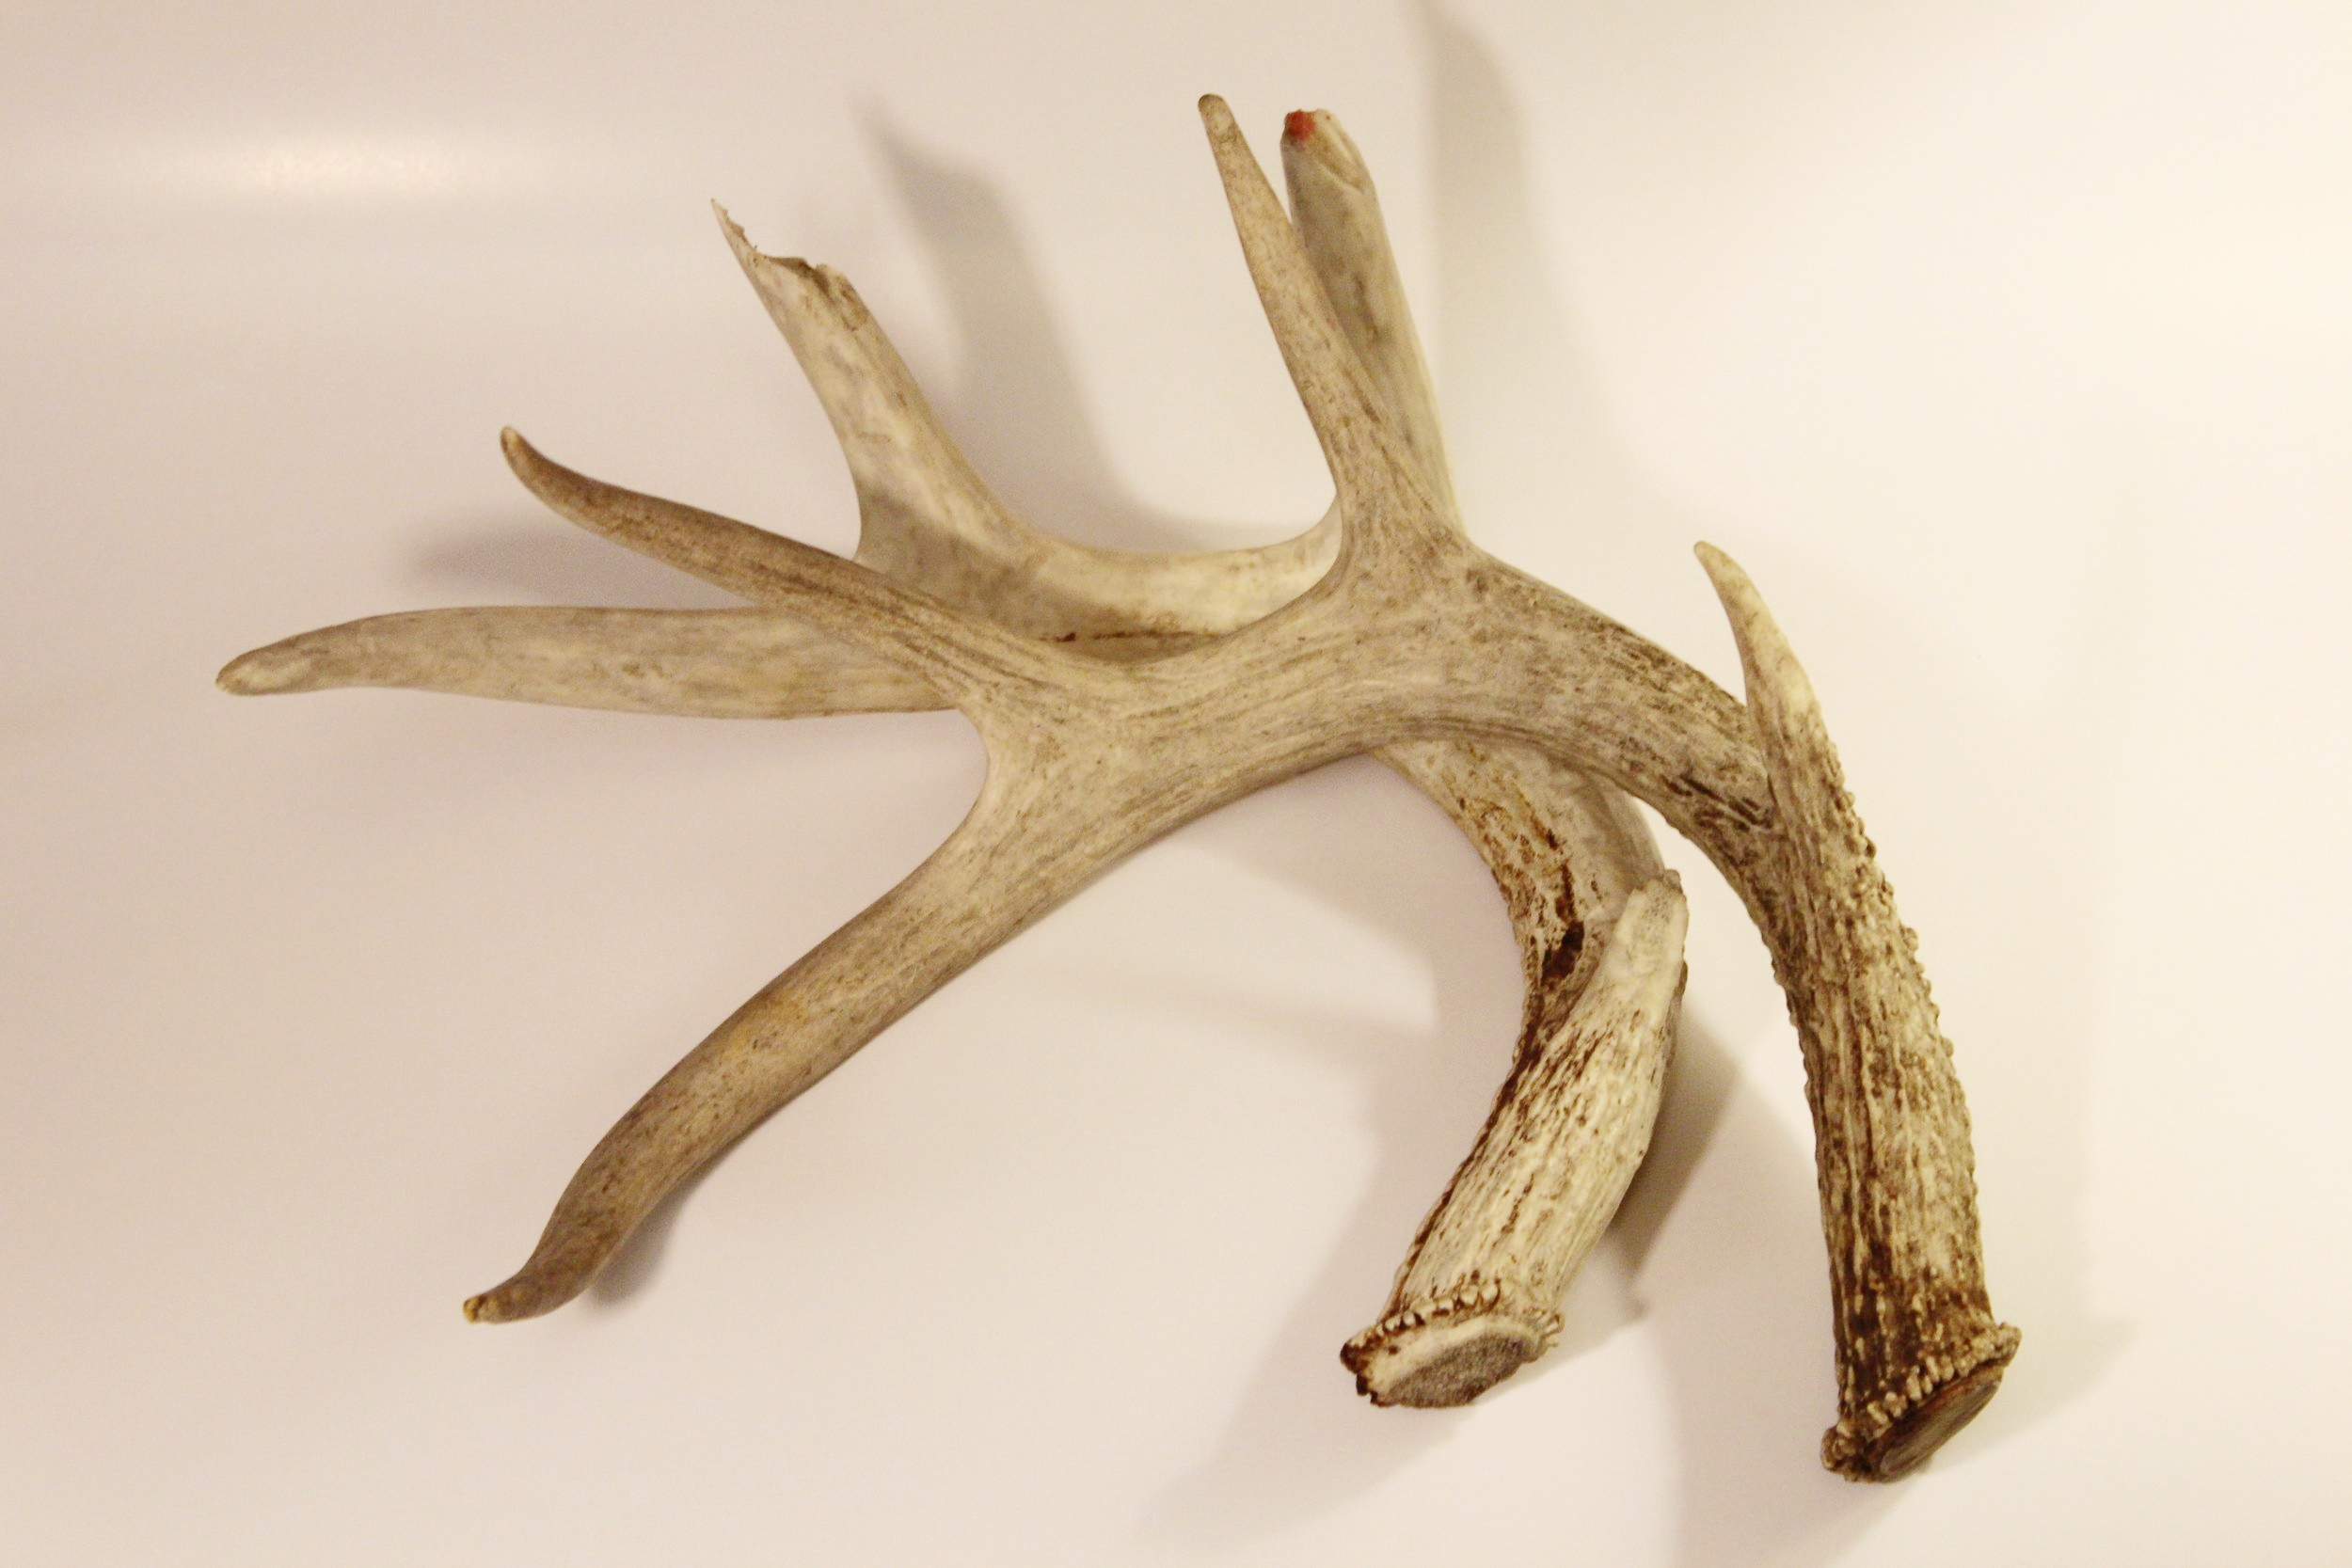 White-tailed Deer Sheds